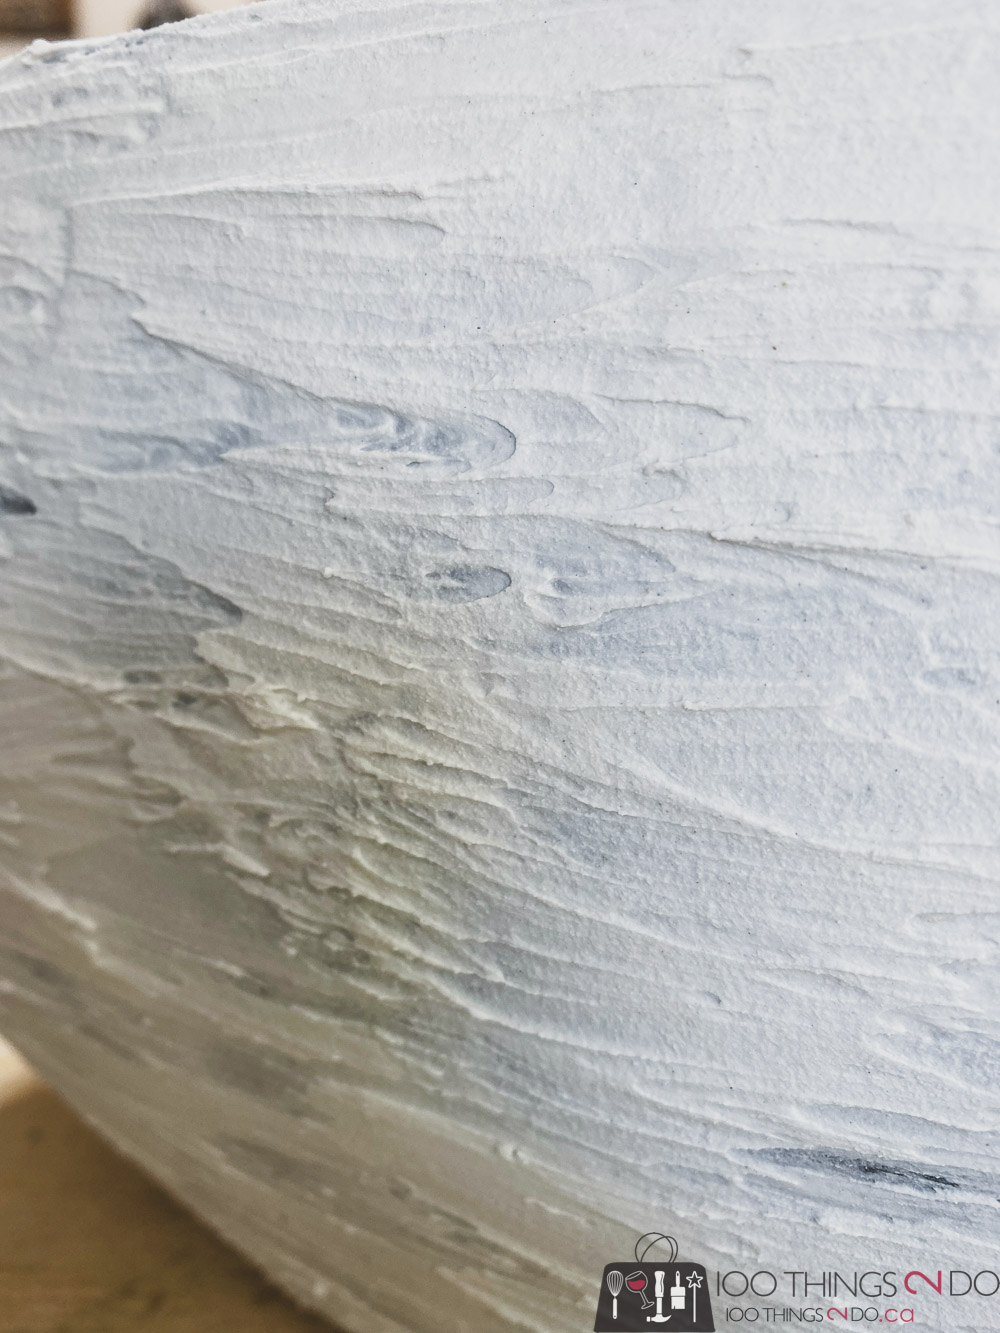 applying drywall putty to a planter